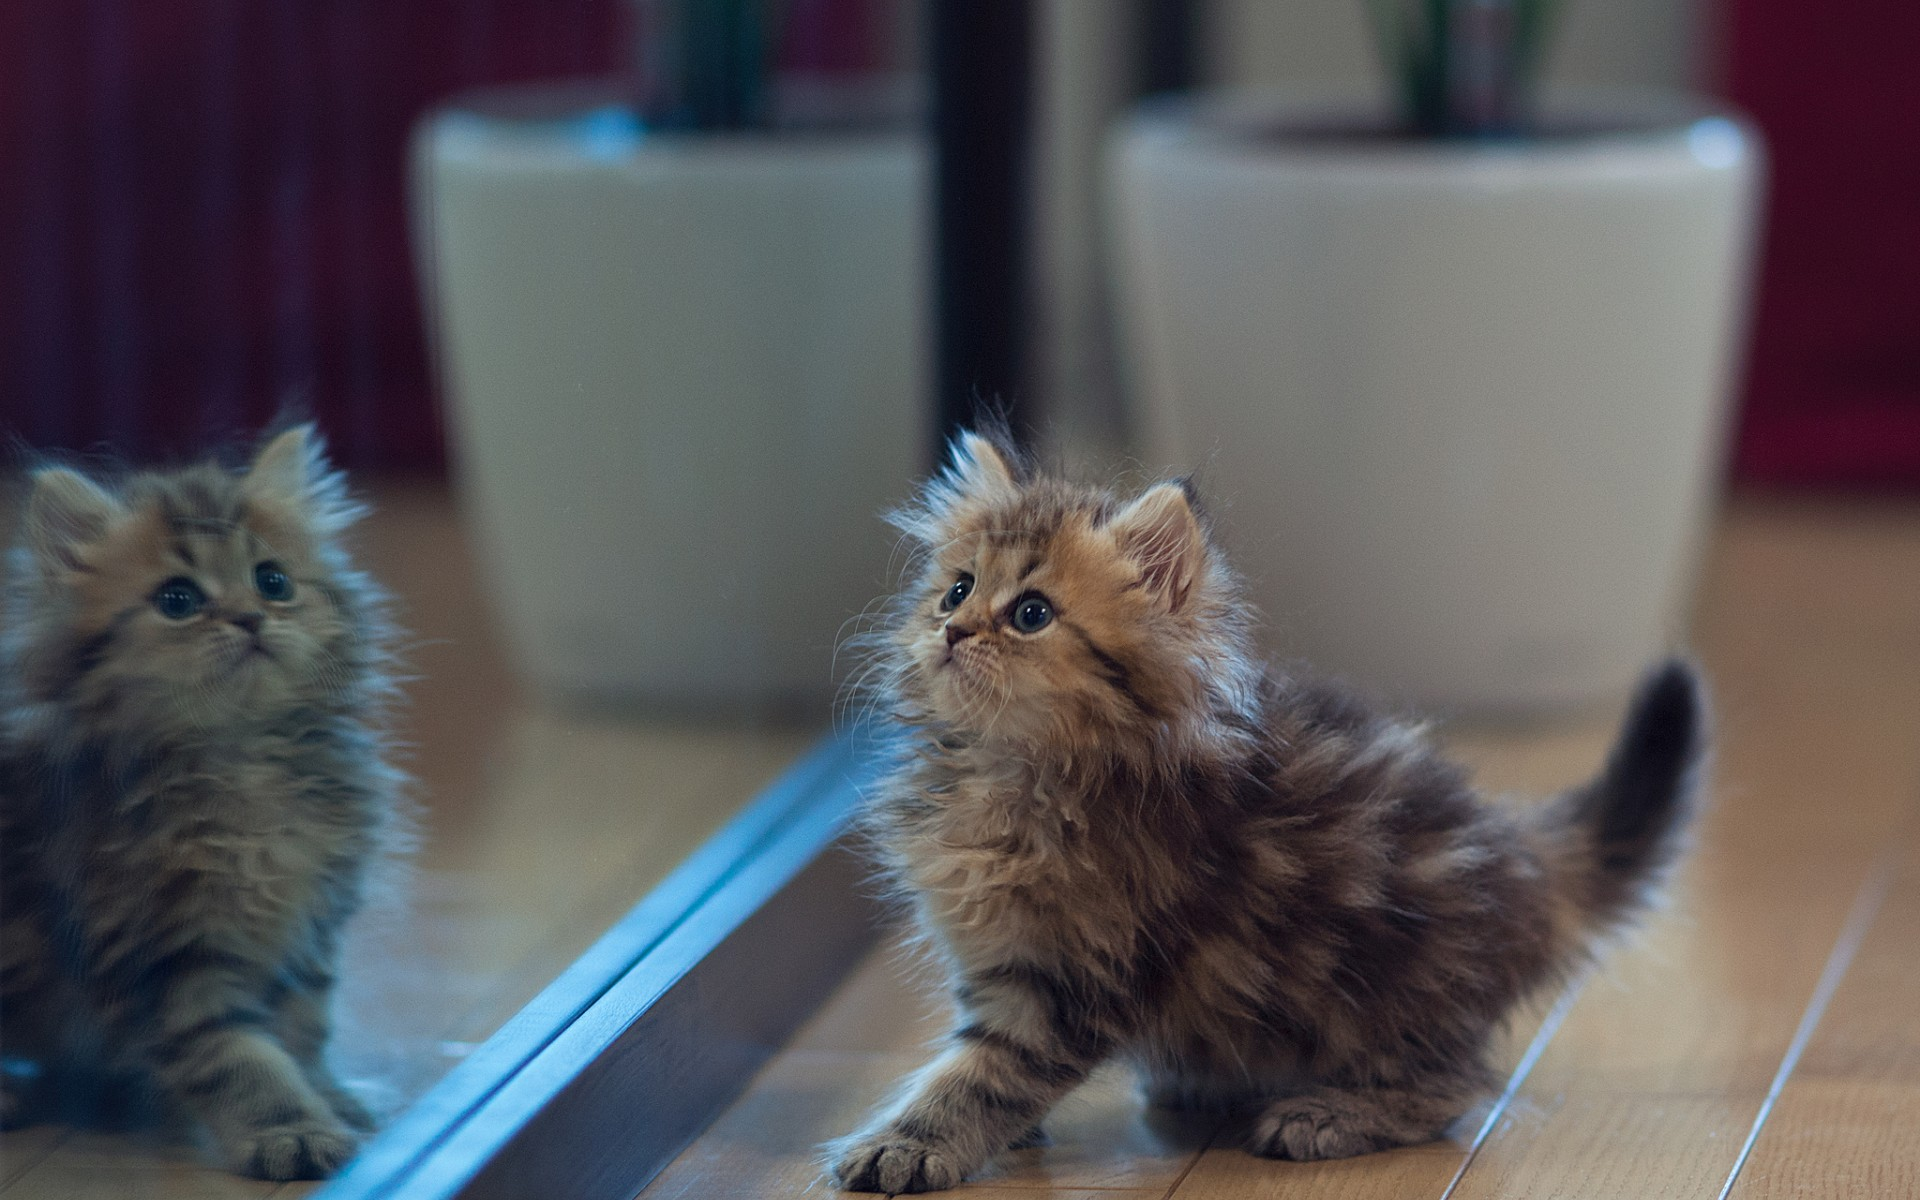 Cute Kitten Mirror Reflection